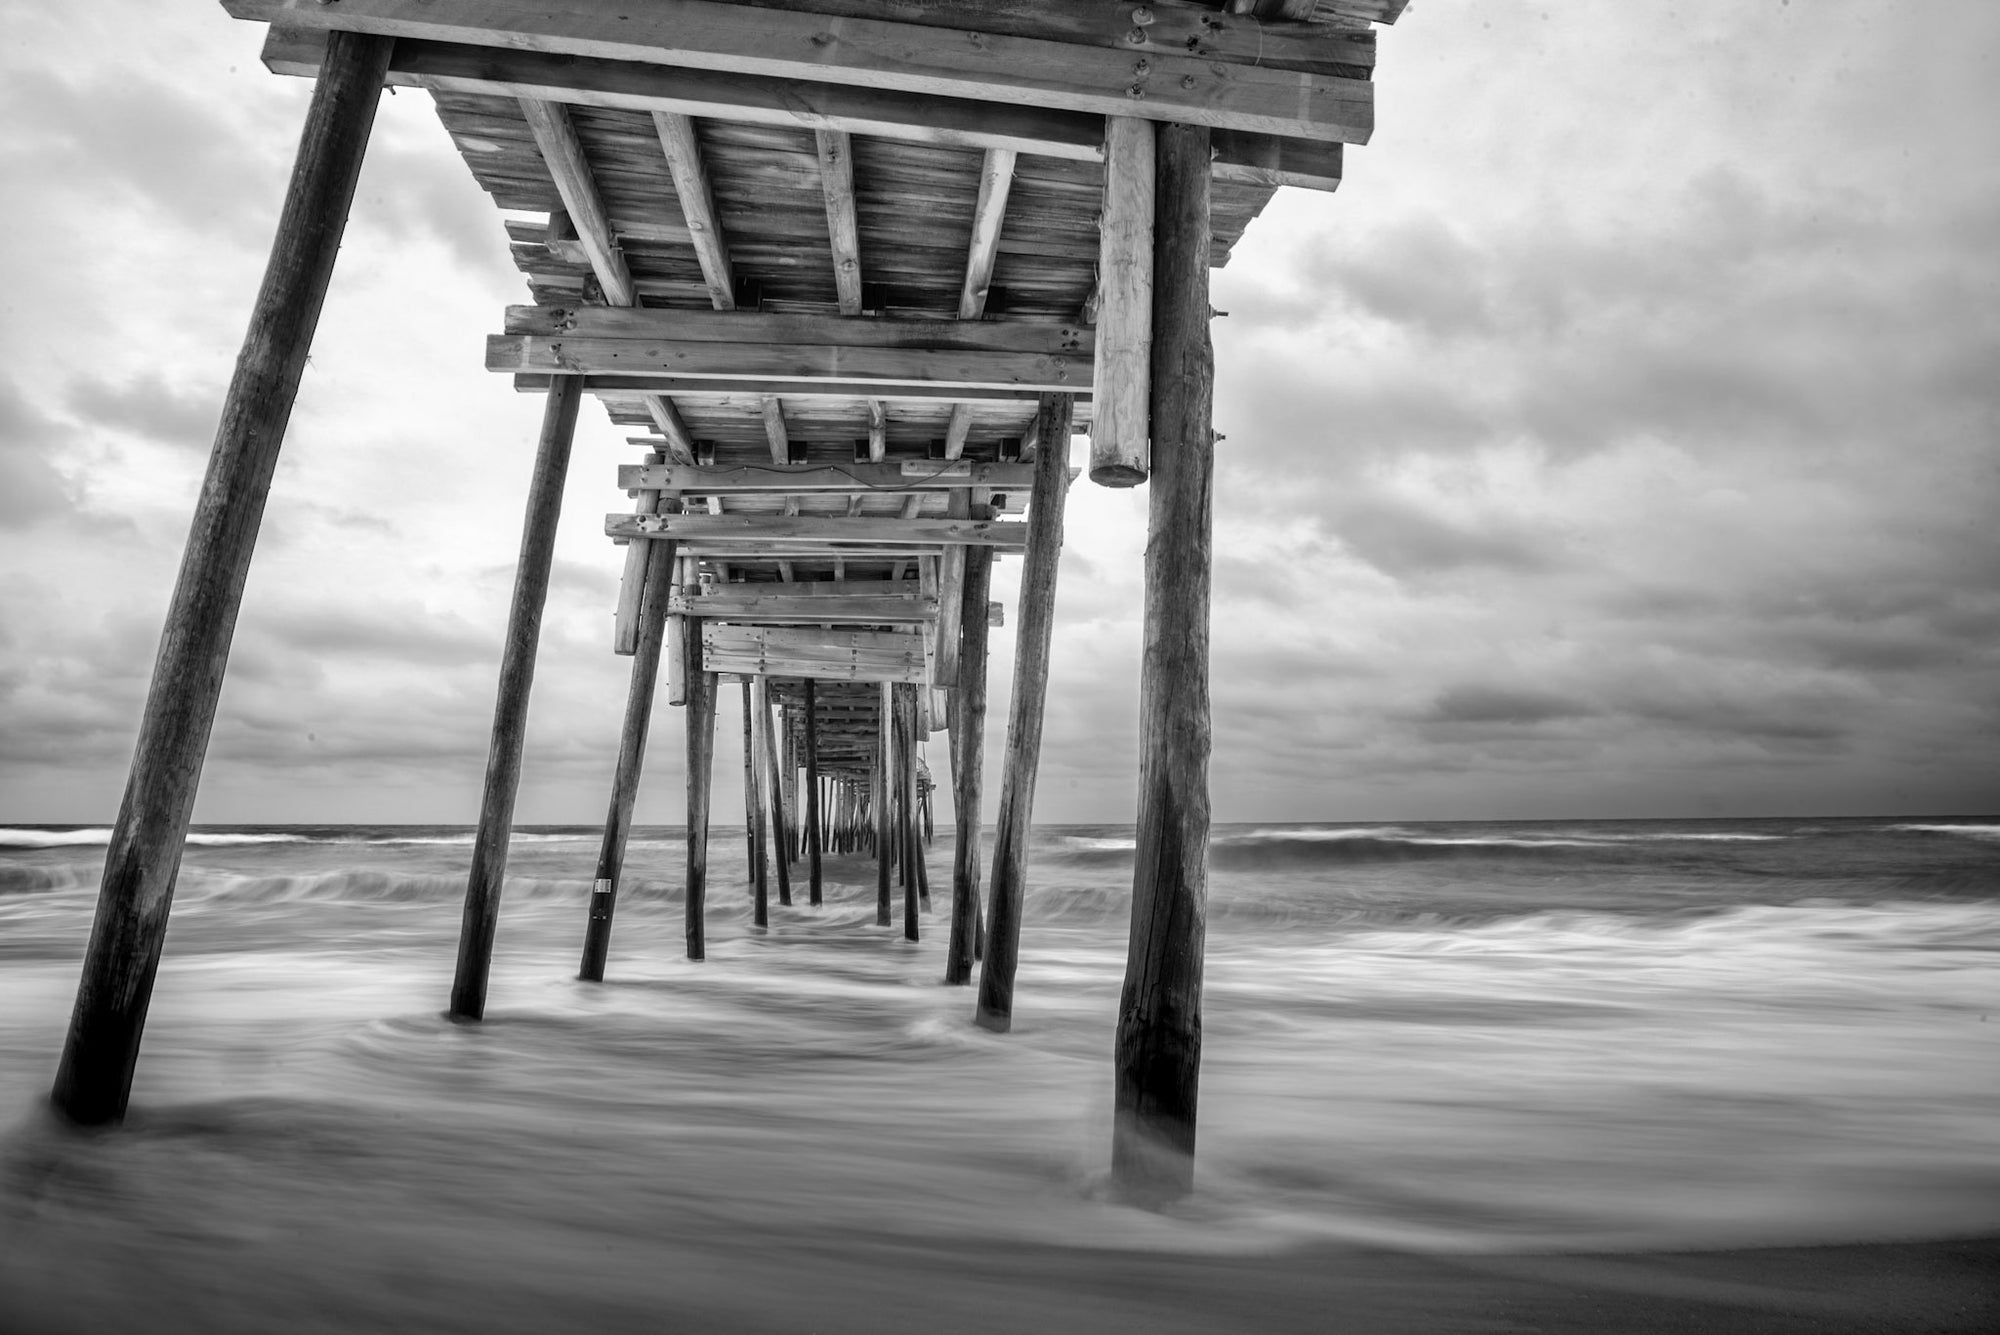 The Avon Fishing Pier in black and white with the waves of the Atlantic Ocean breaking on the Avon beach on the Outer Banks.